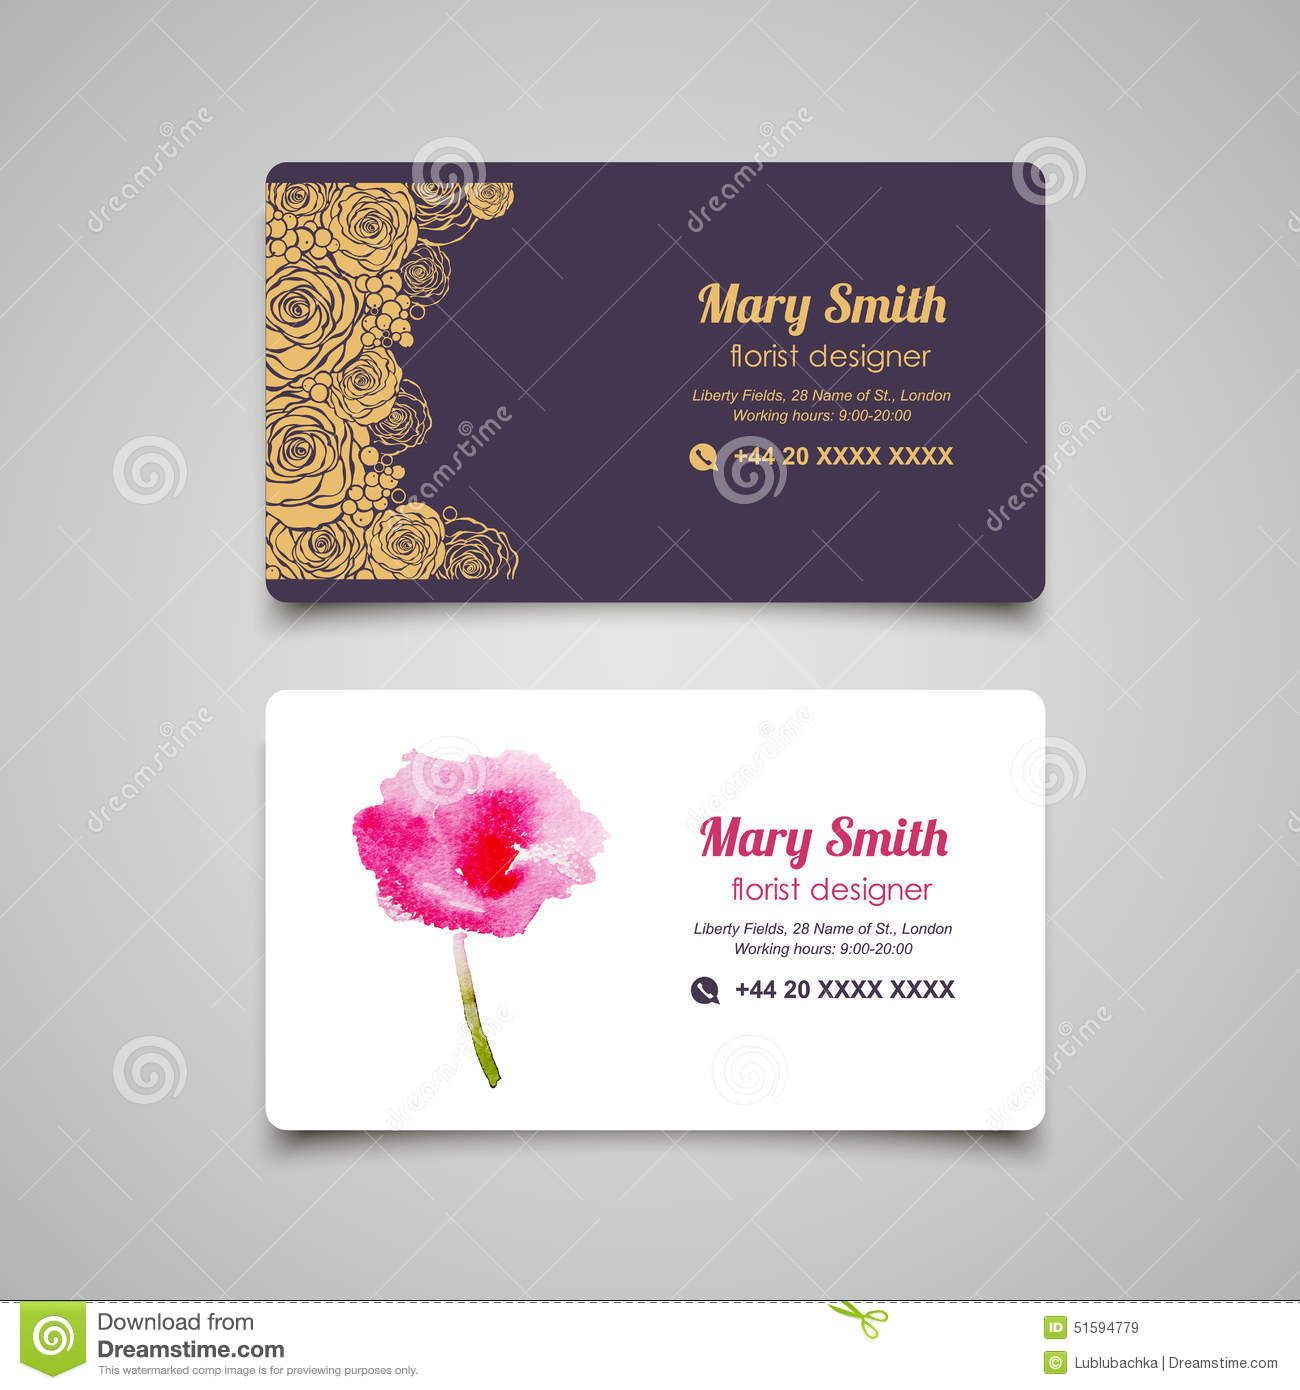 Florist business card vector design templates set 51594779 for Flower business cards